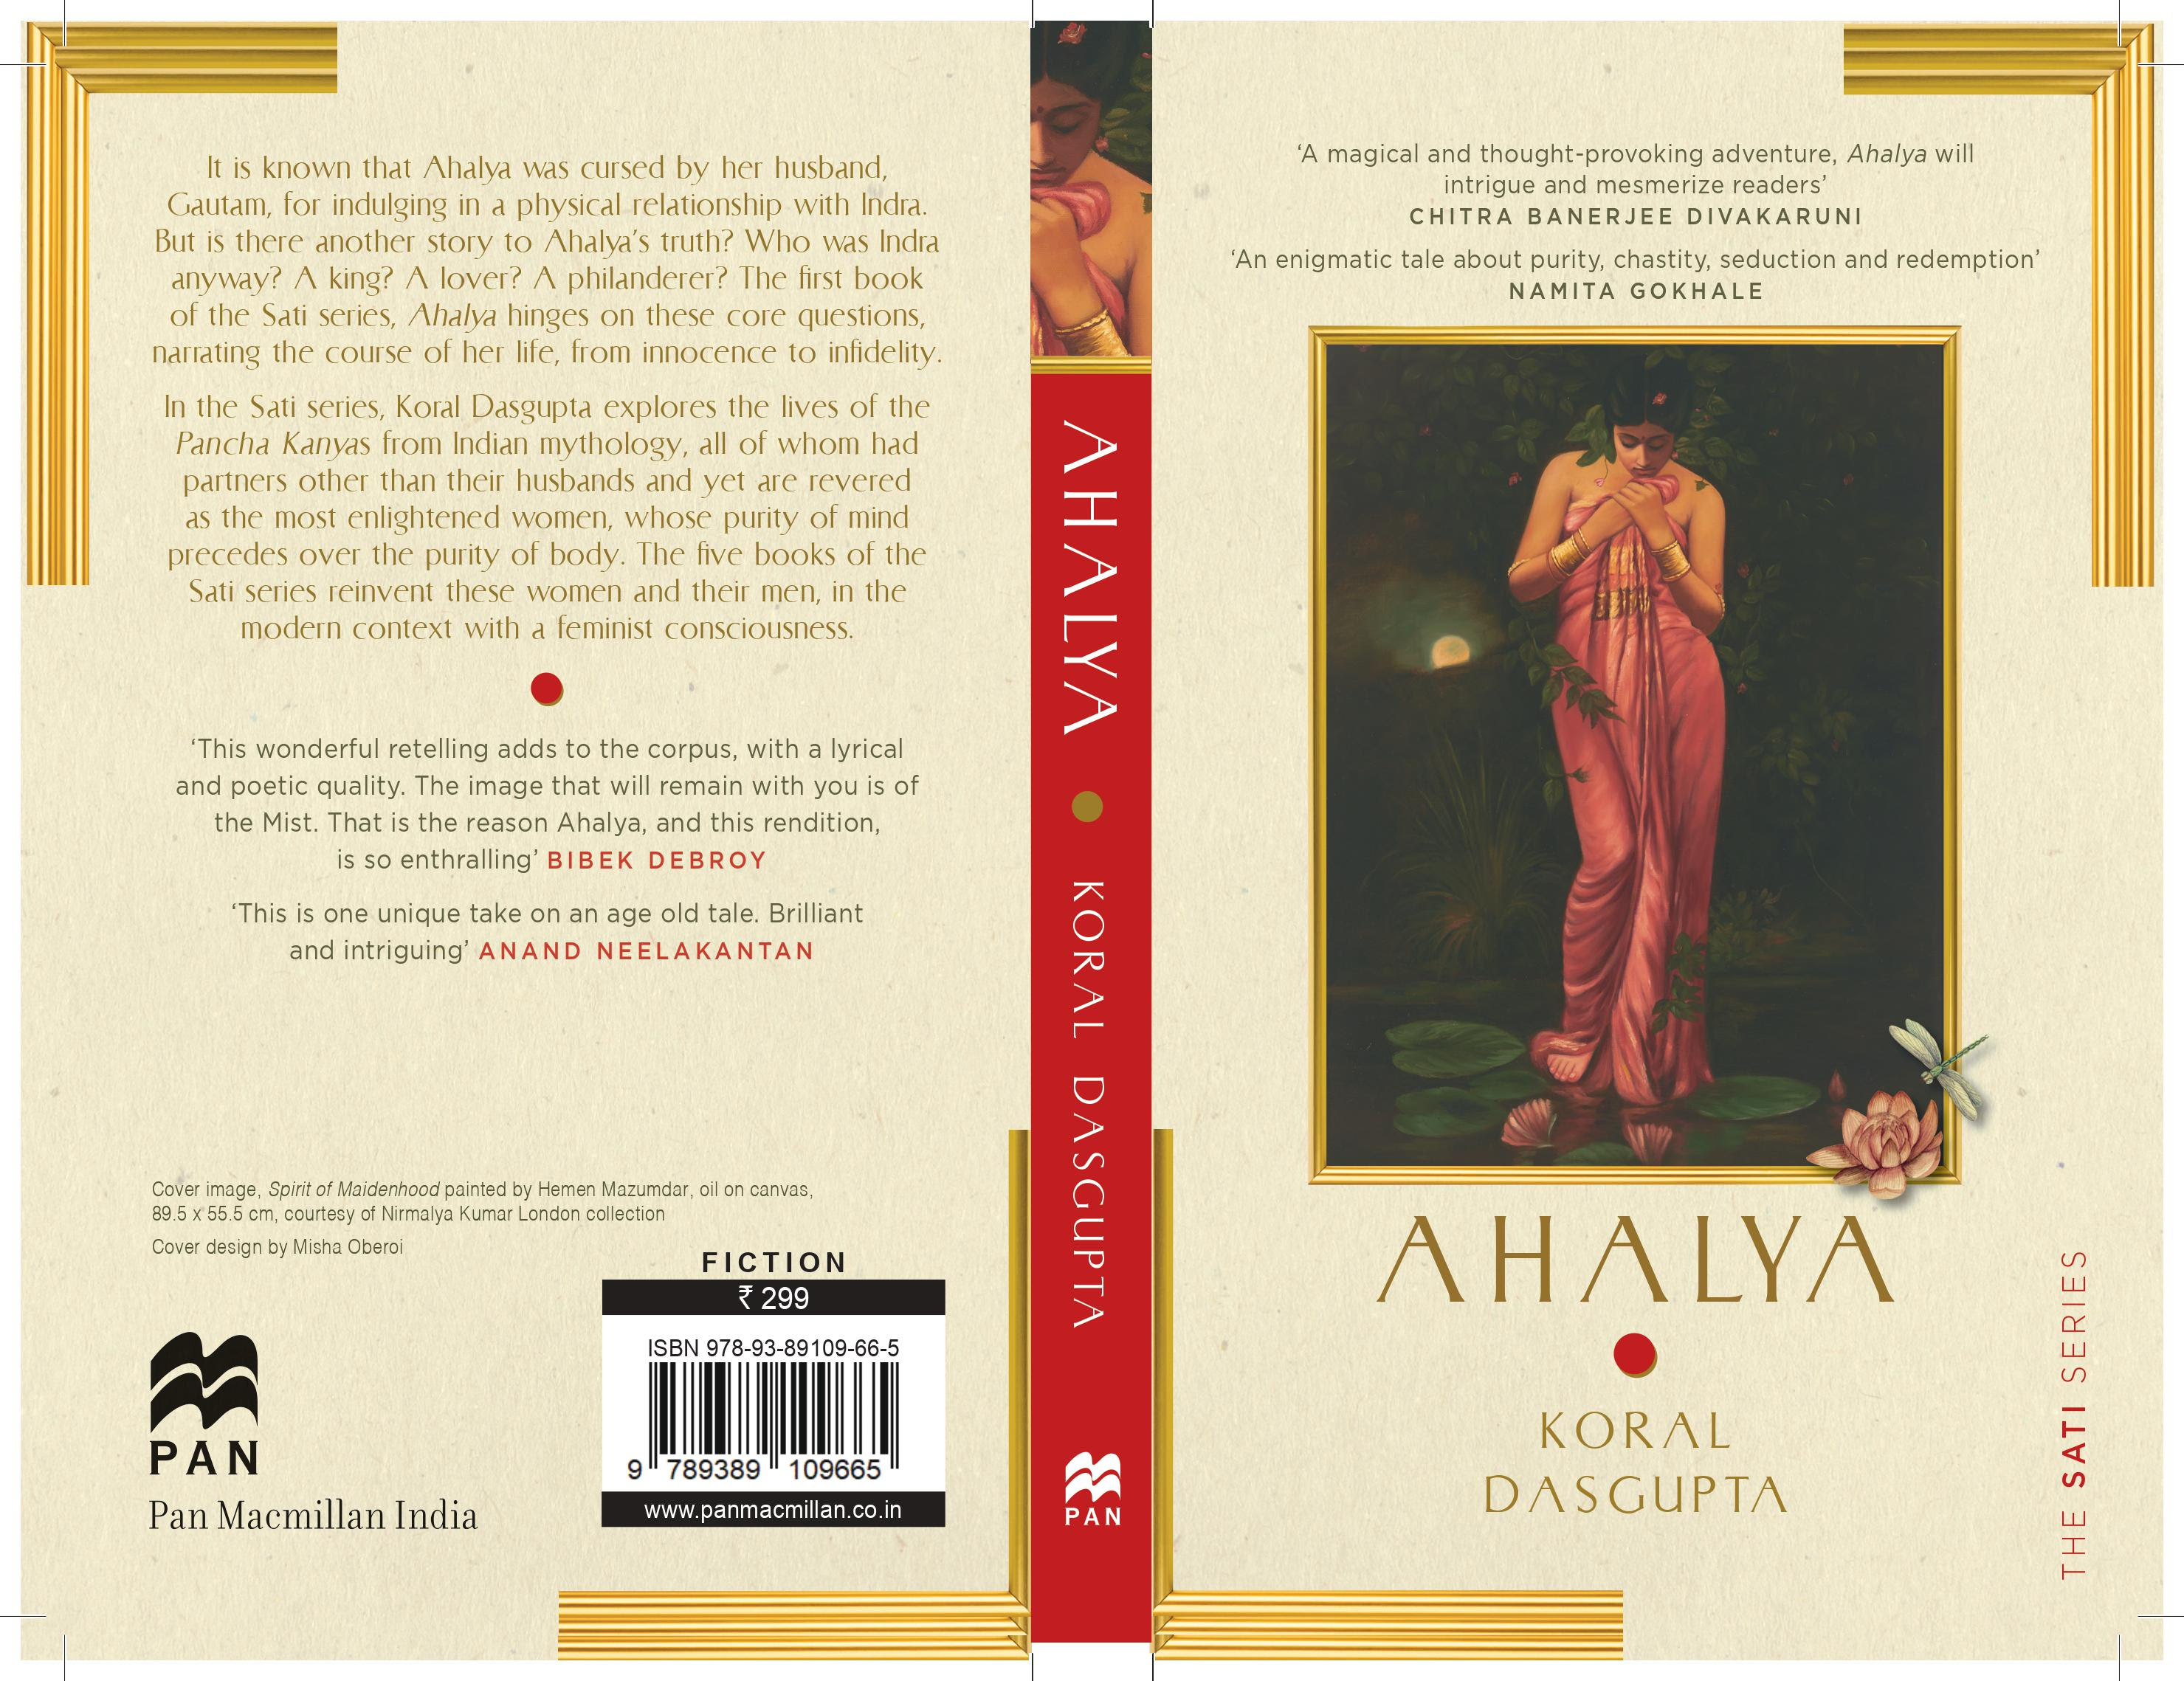 The image shows the book jacket of Ahalya written by Koral Dasgupta with description written on the left panel and an illustration of a woman on the right panel.